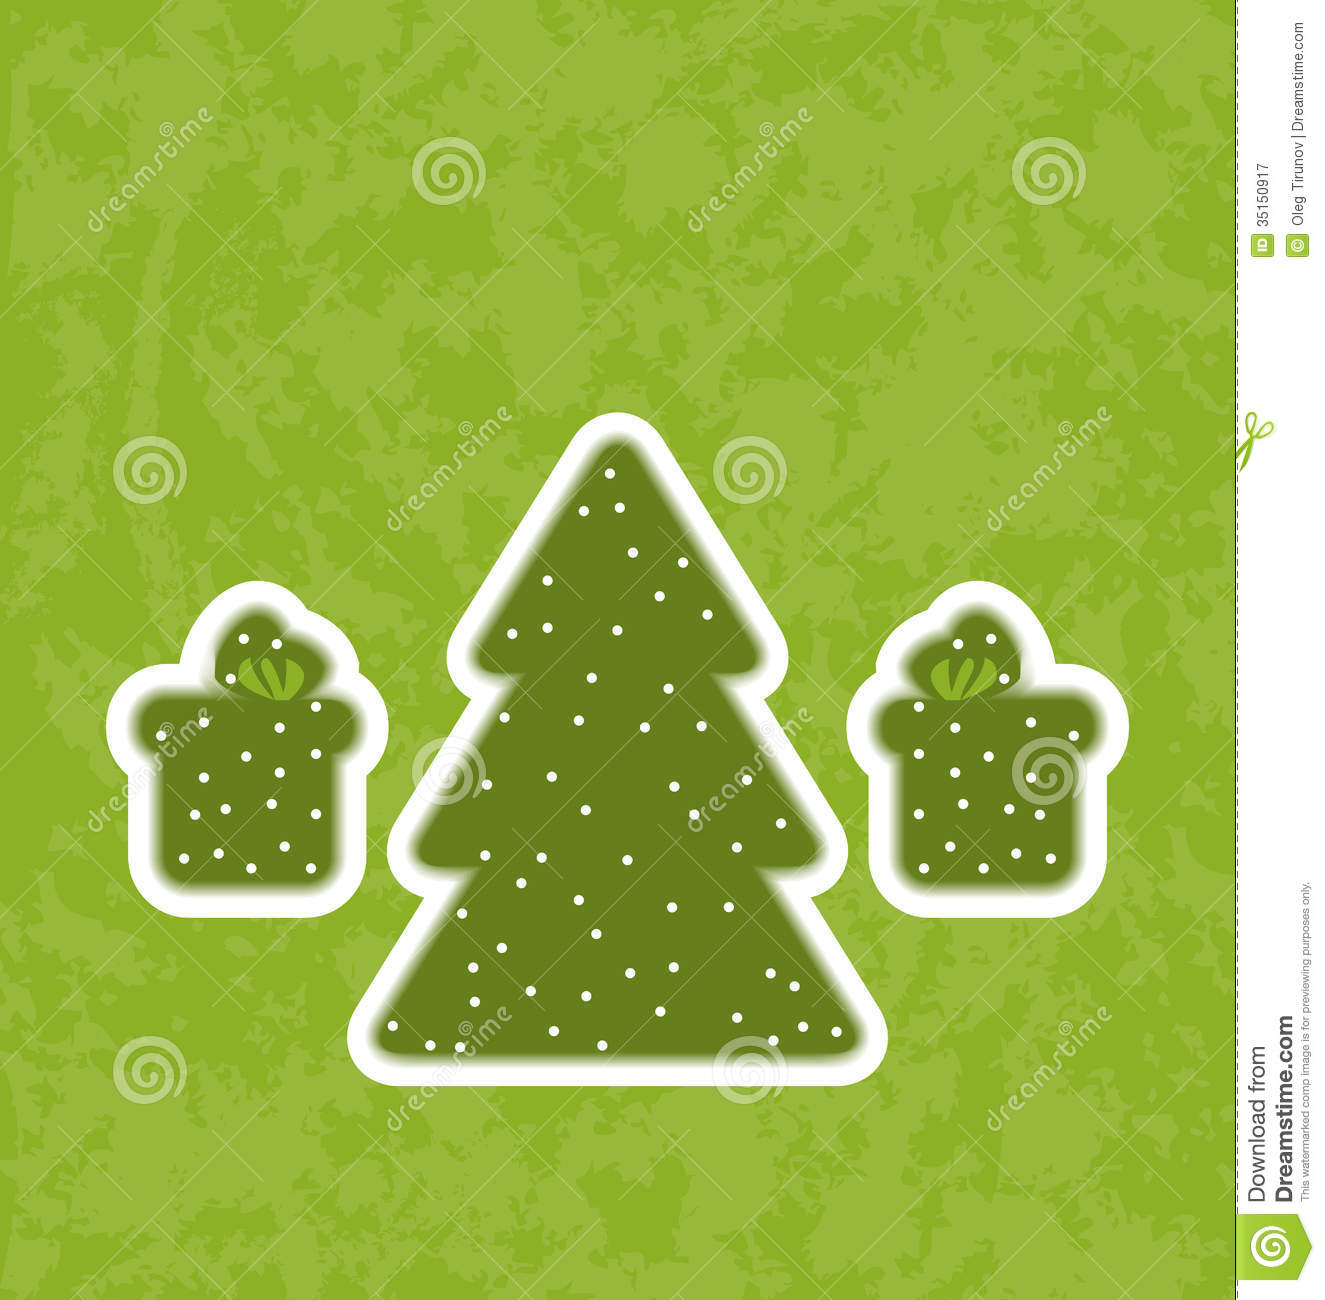 Christmas Tree Made Out Of Paper: Green Paper Cut-out Christmas Tree And Gifts Stock Vector